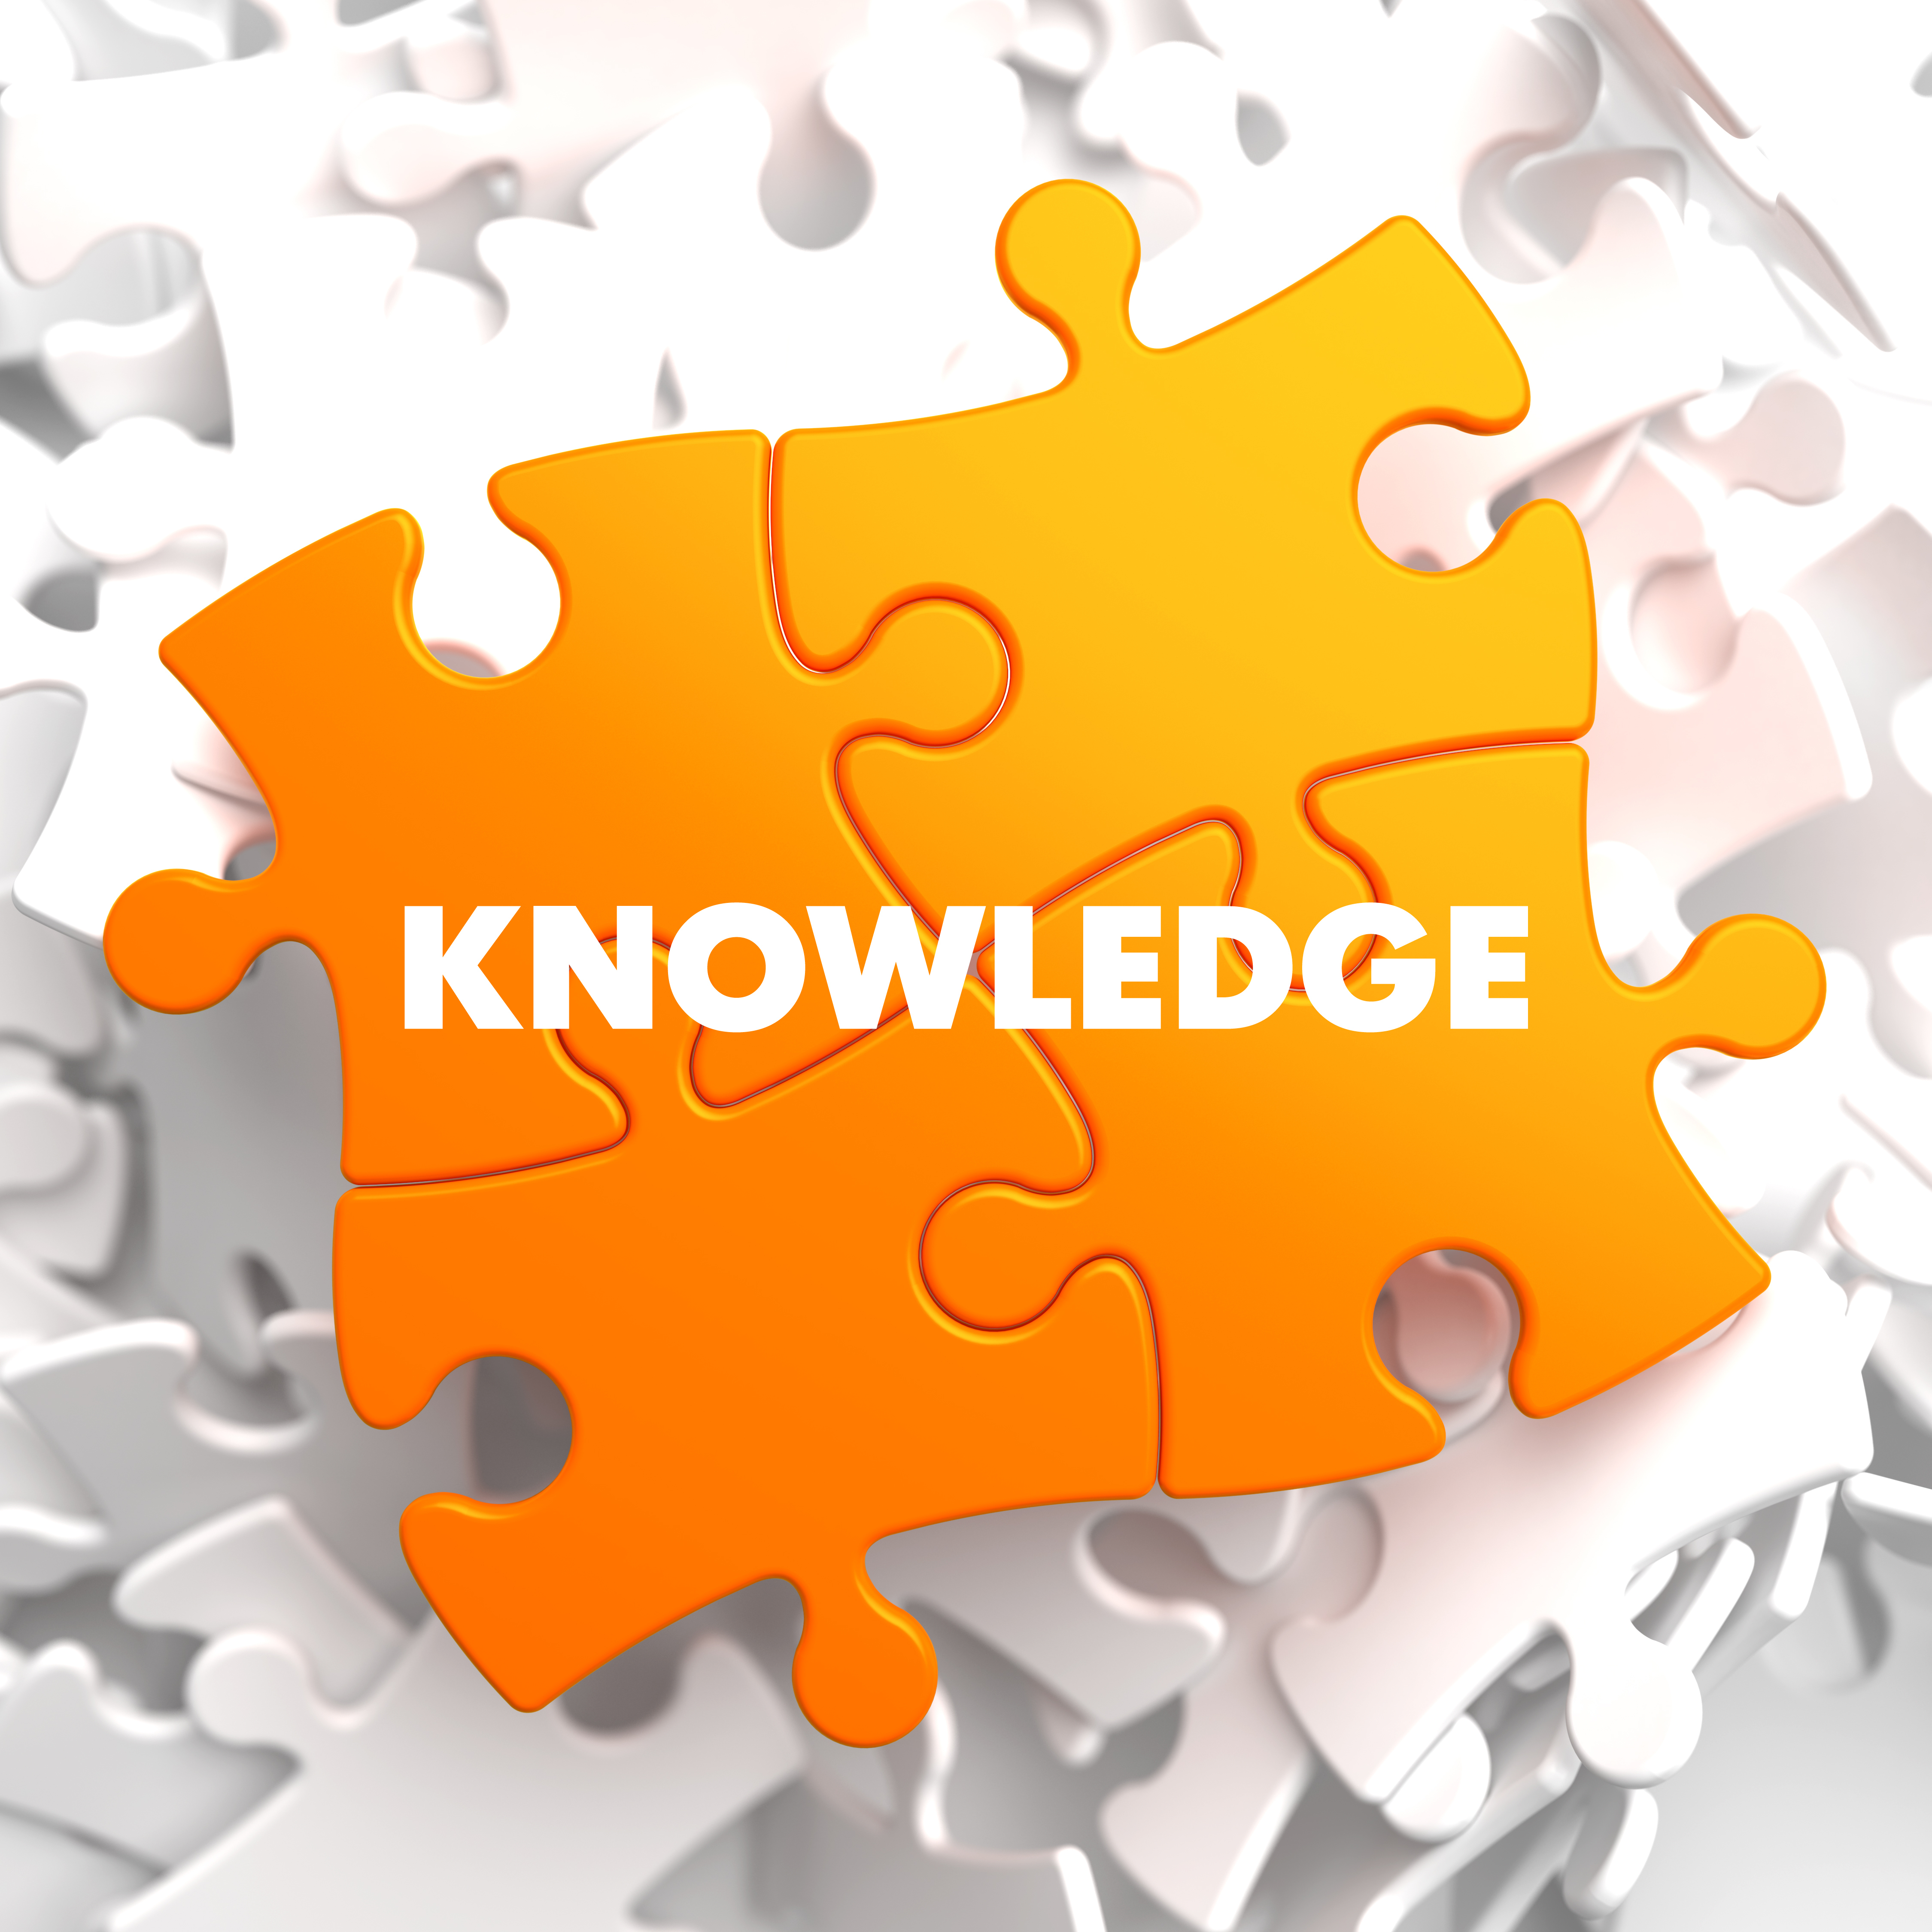 Knowledge on Orange Puzzle on White Background